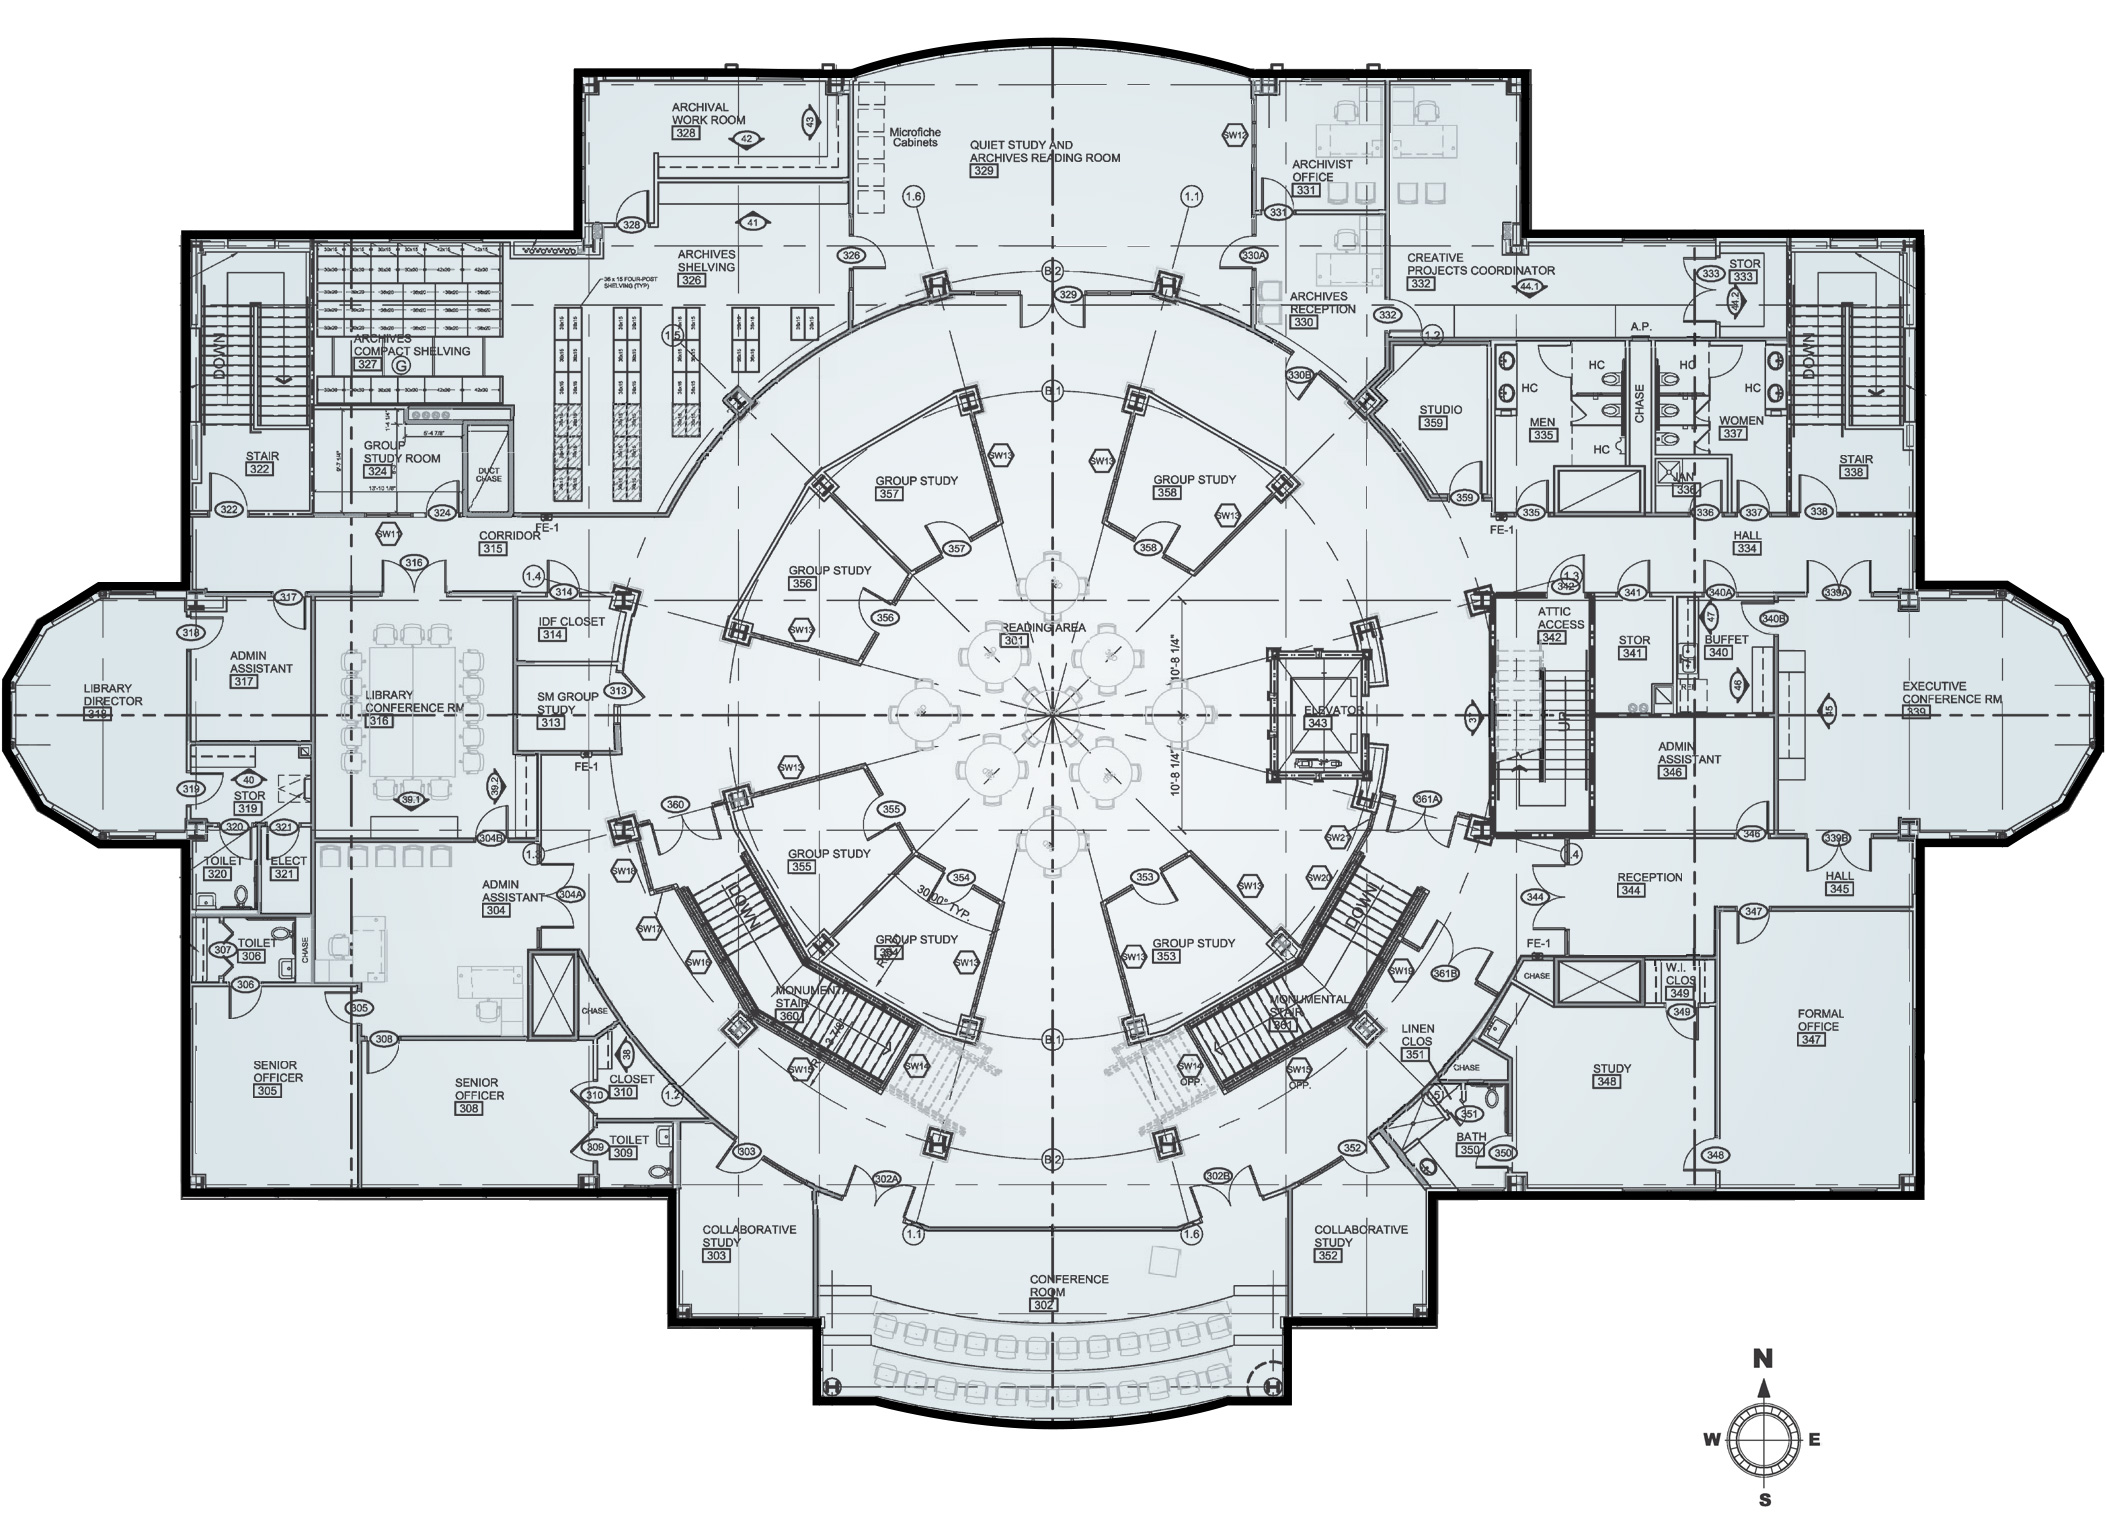 Wardson Construction Floor Plans: Open The Doors: Completing Union's New